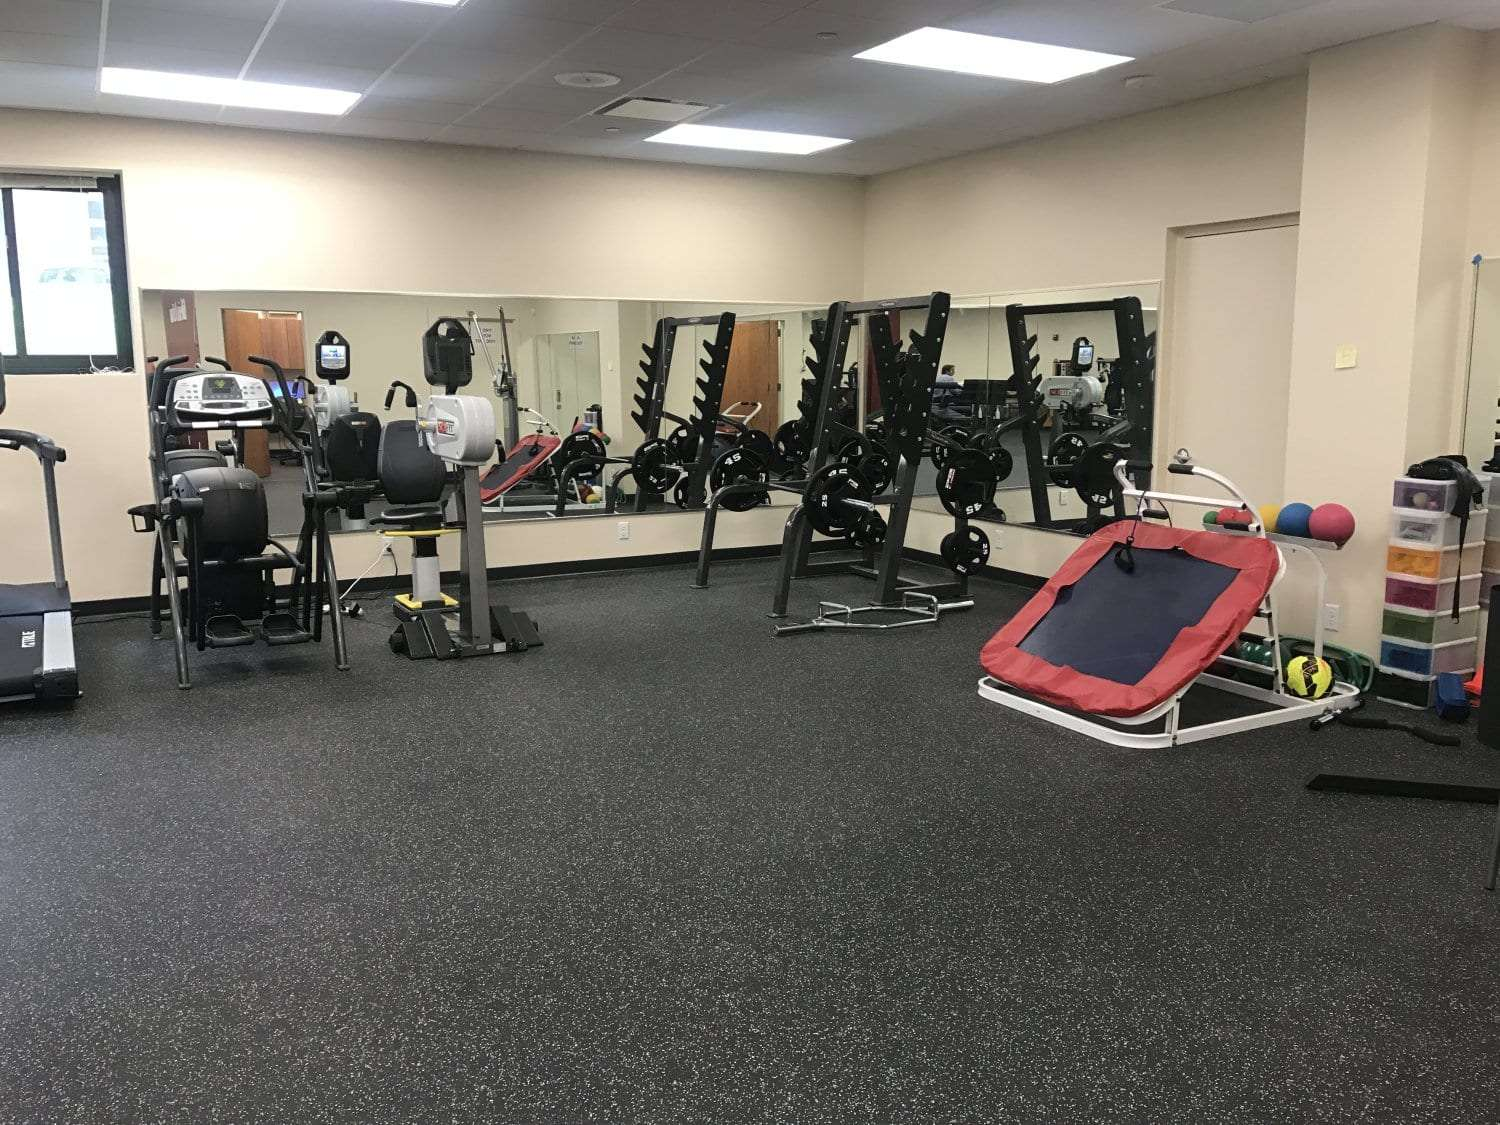 Here is an image of a room of exercise equipment at our physical therapy clinic in Pleasantville, New York.